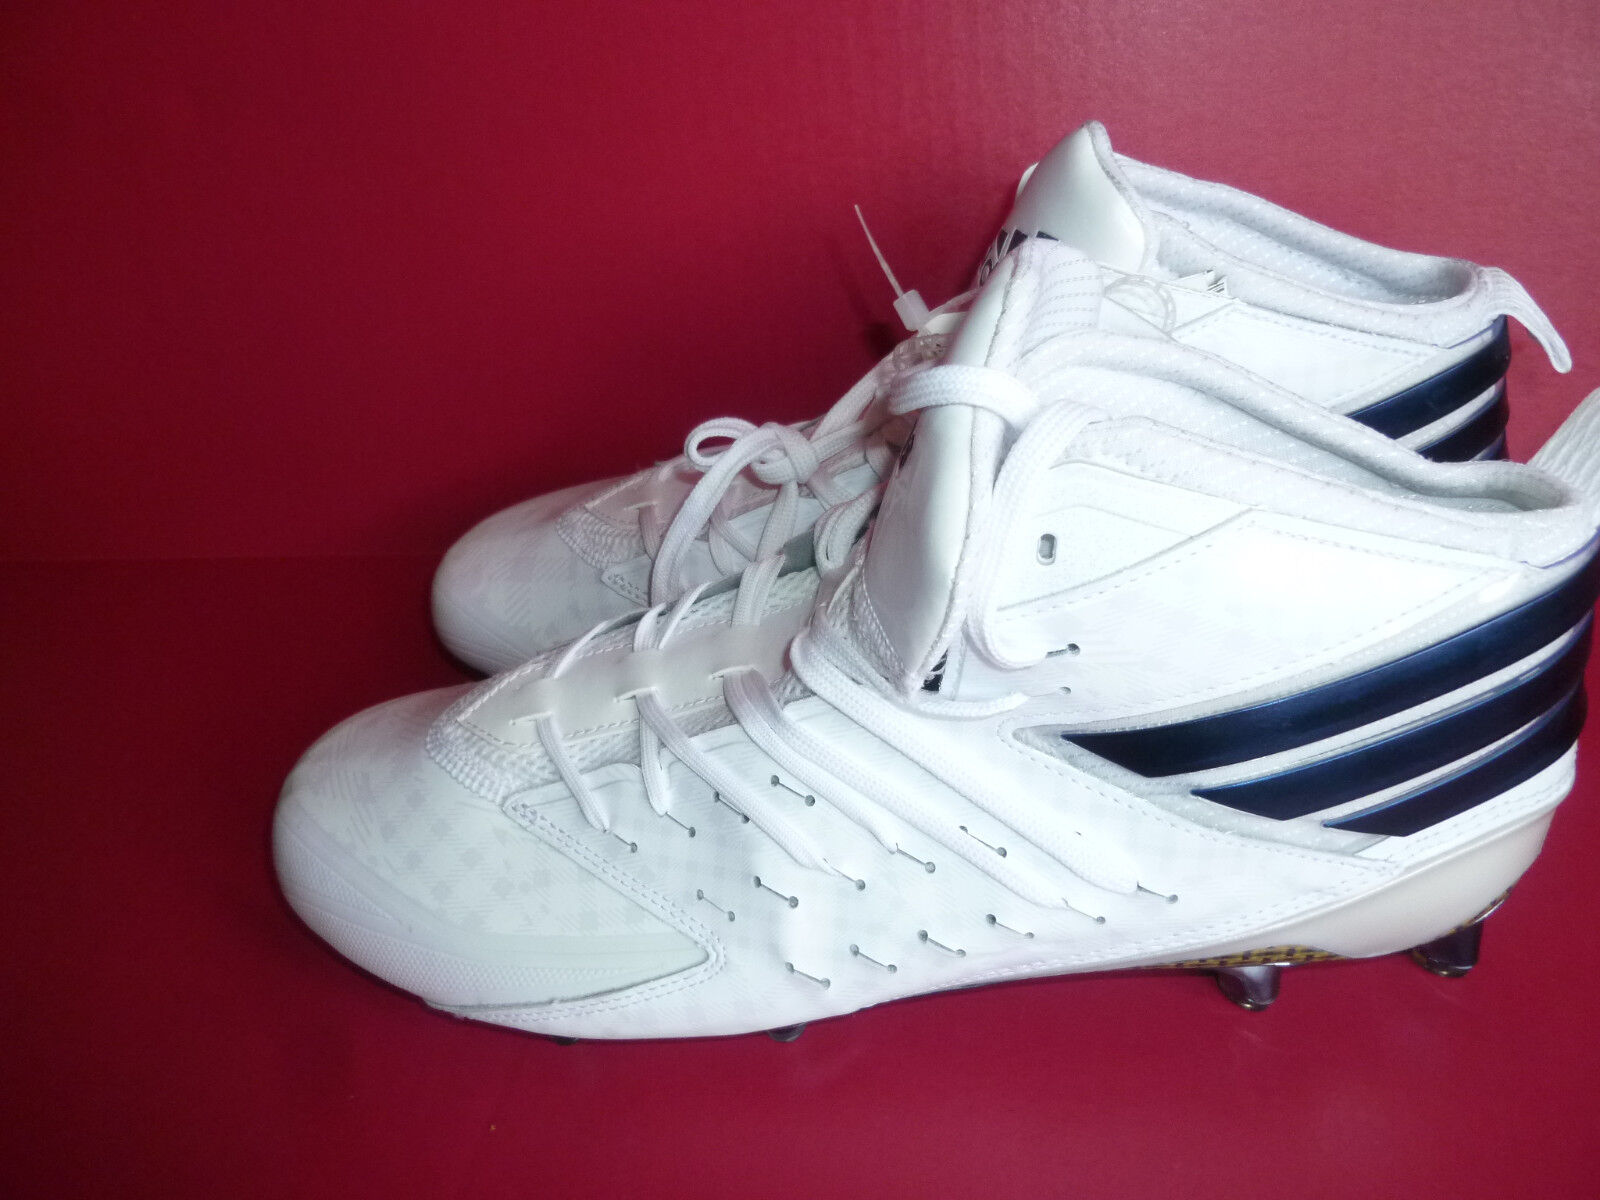 NEW! Adidas Freak X Kevlar Men's Football Cleats US Sz 13 White Blue AQ7366 NWOB New shoes for men and women, limited time discount